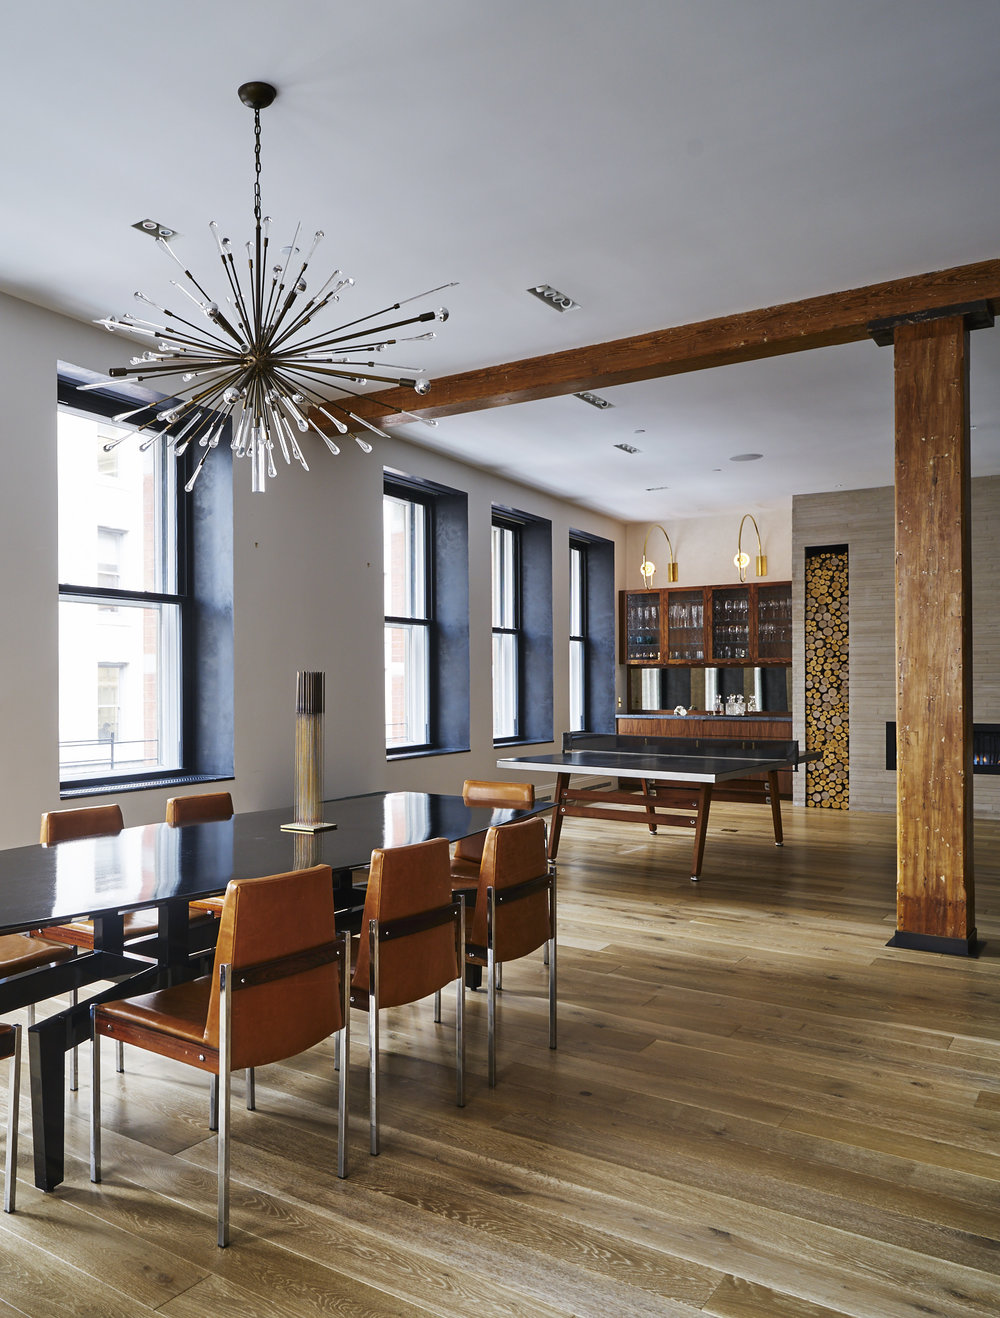 Modern Soho loft renovation dining room with ping pong table, fireplace and open bar